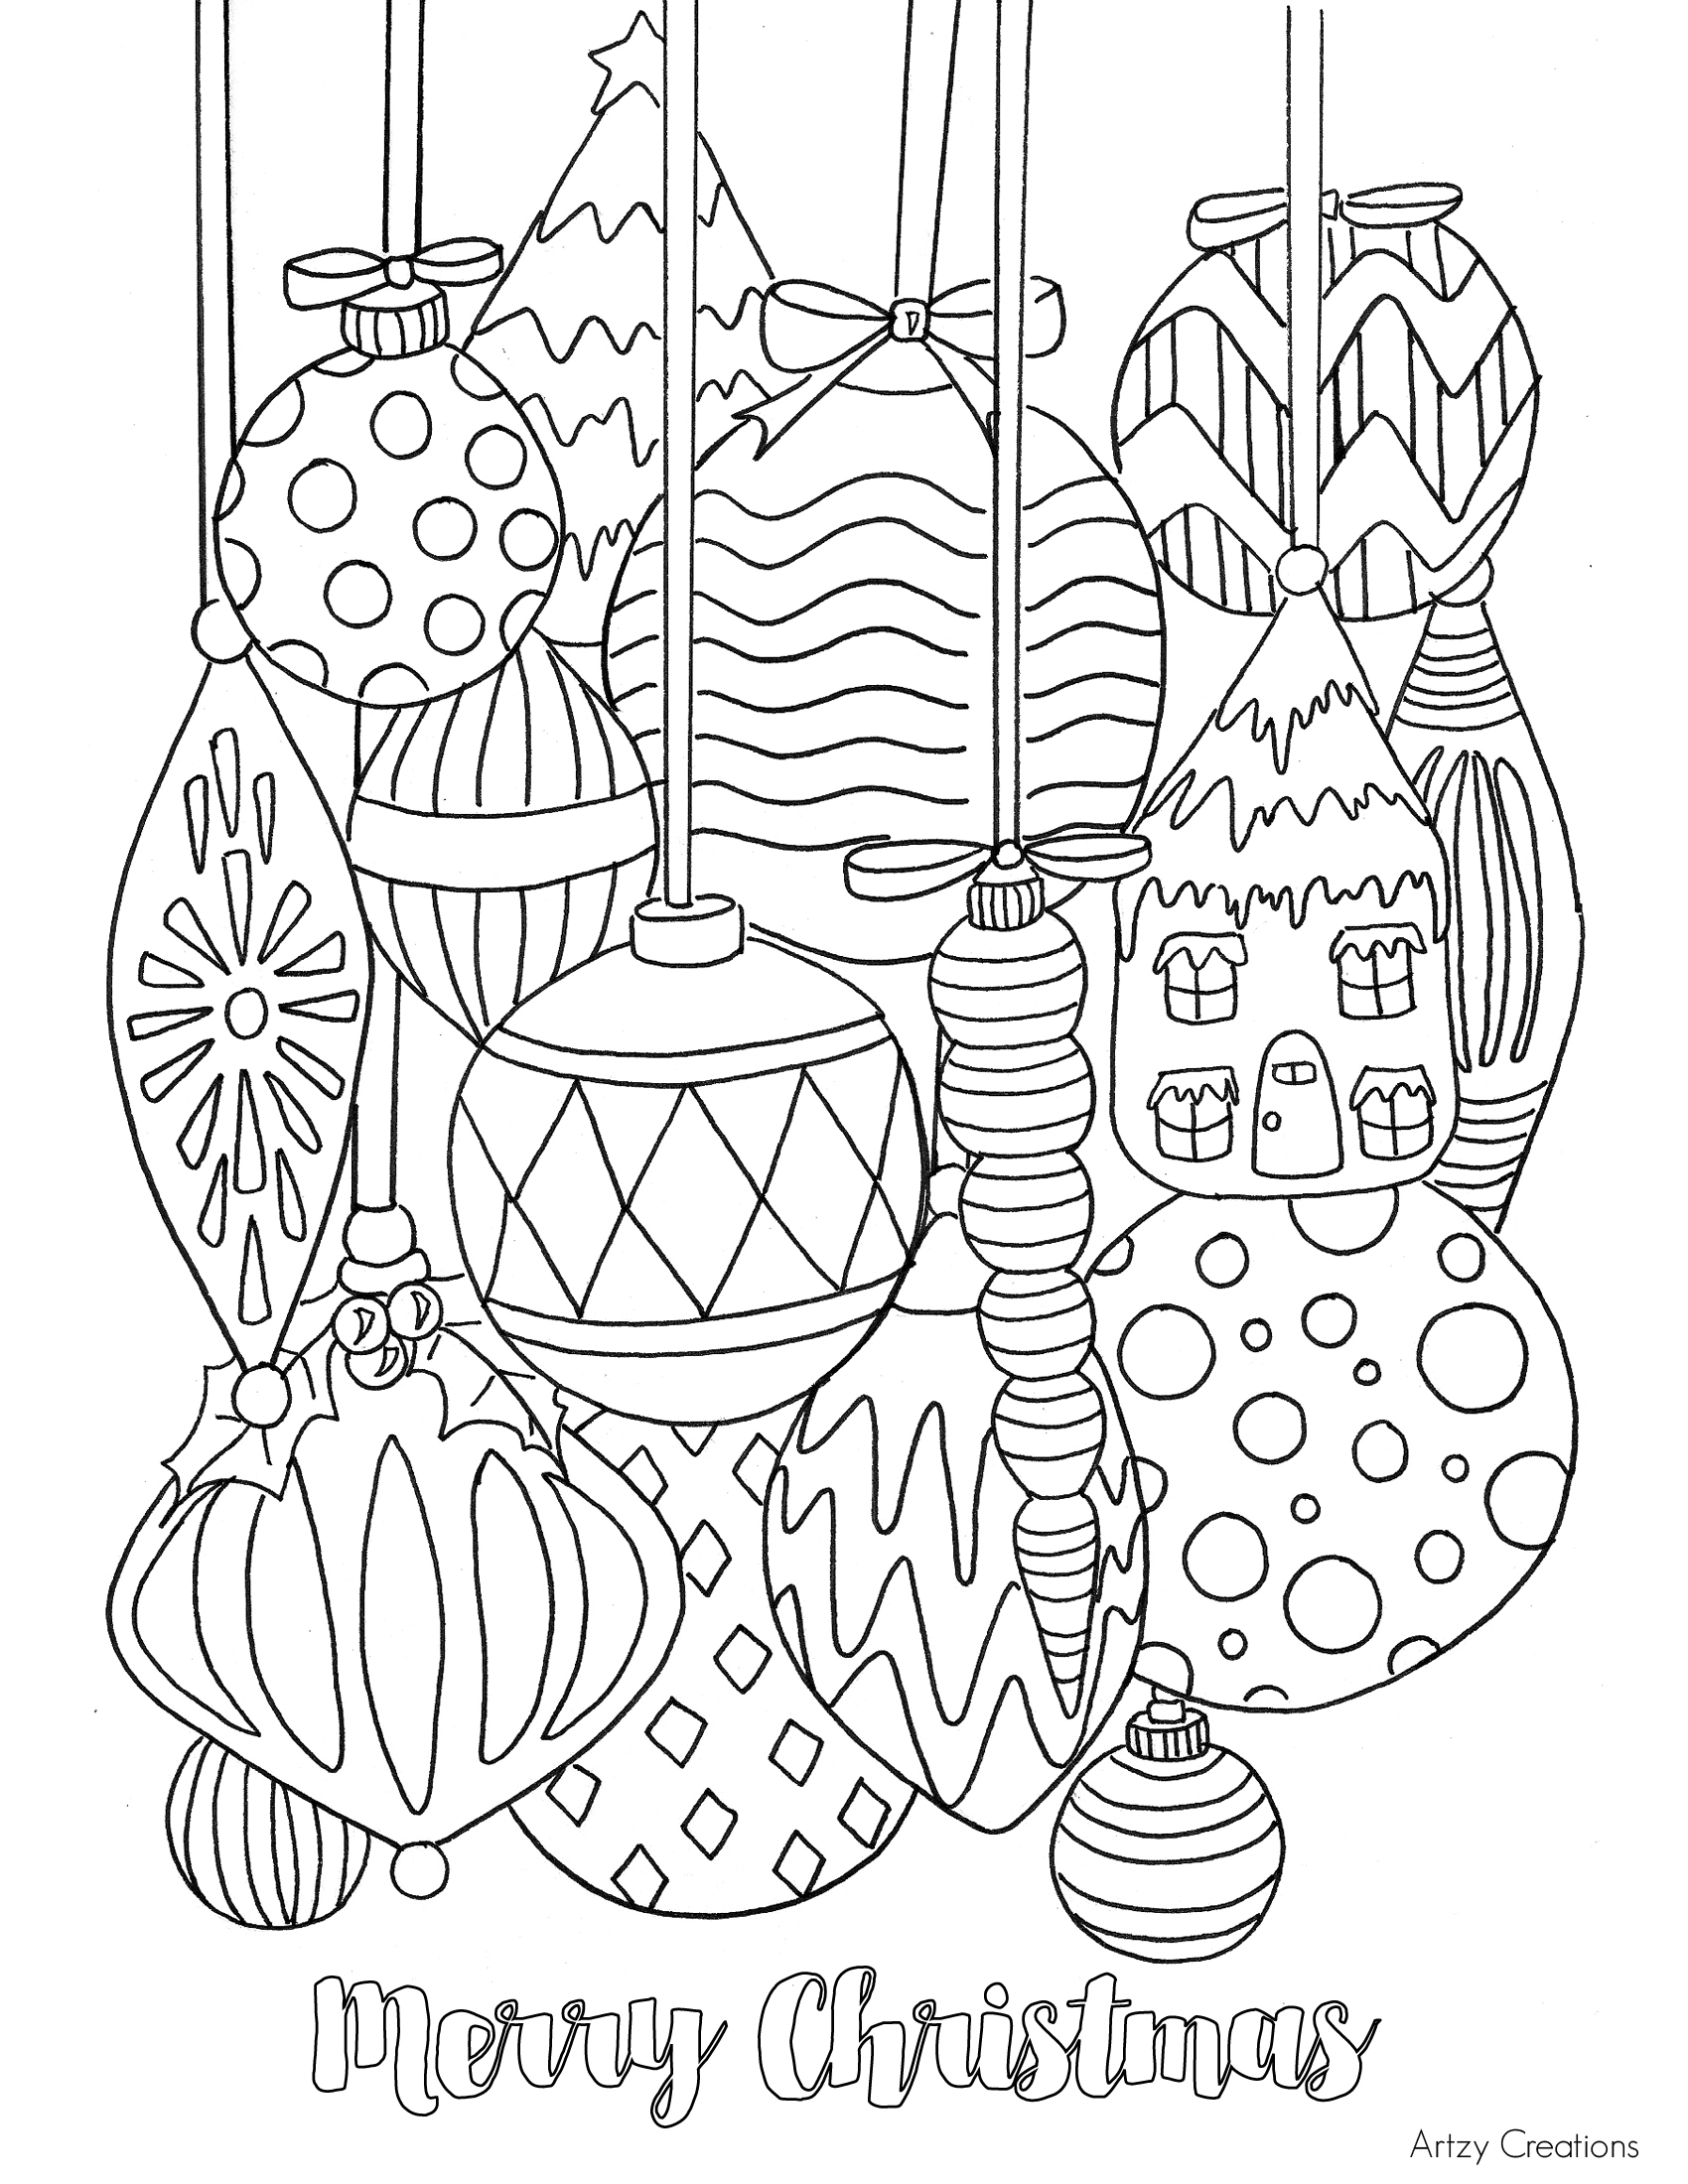 Christmas Coloring For Adults With Free Printable Pages Download